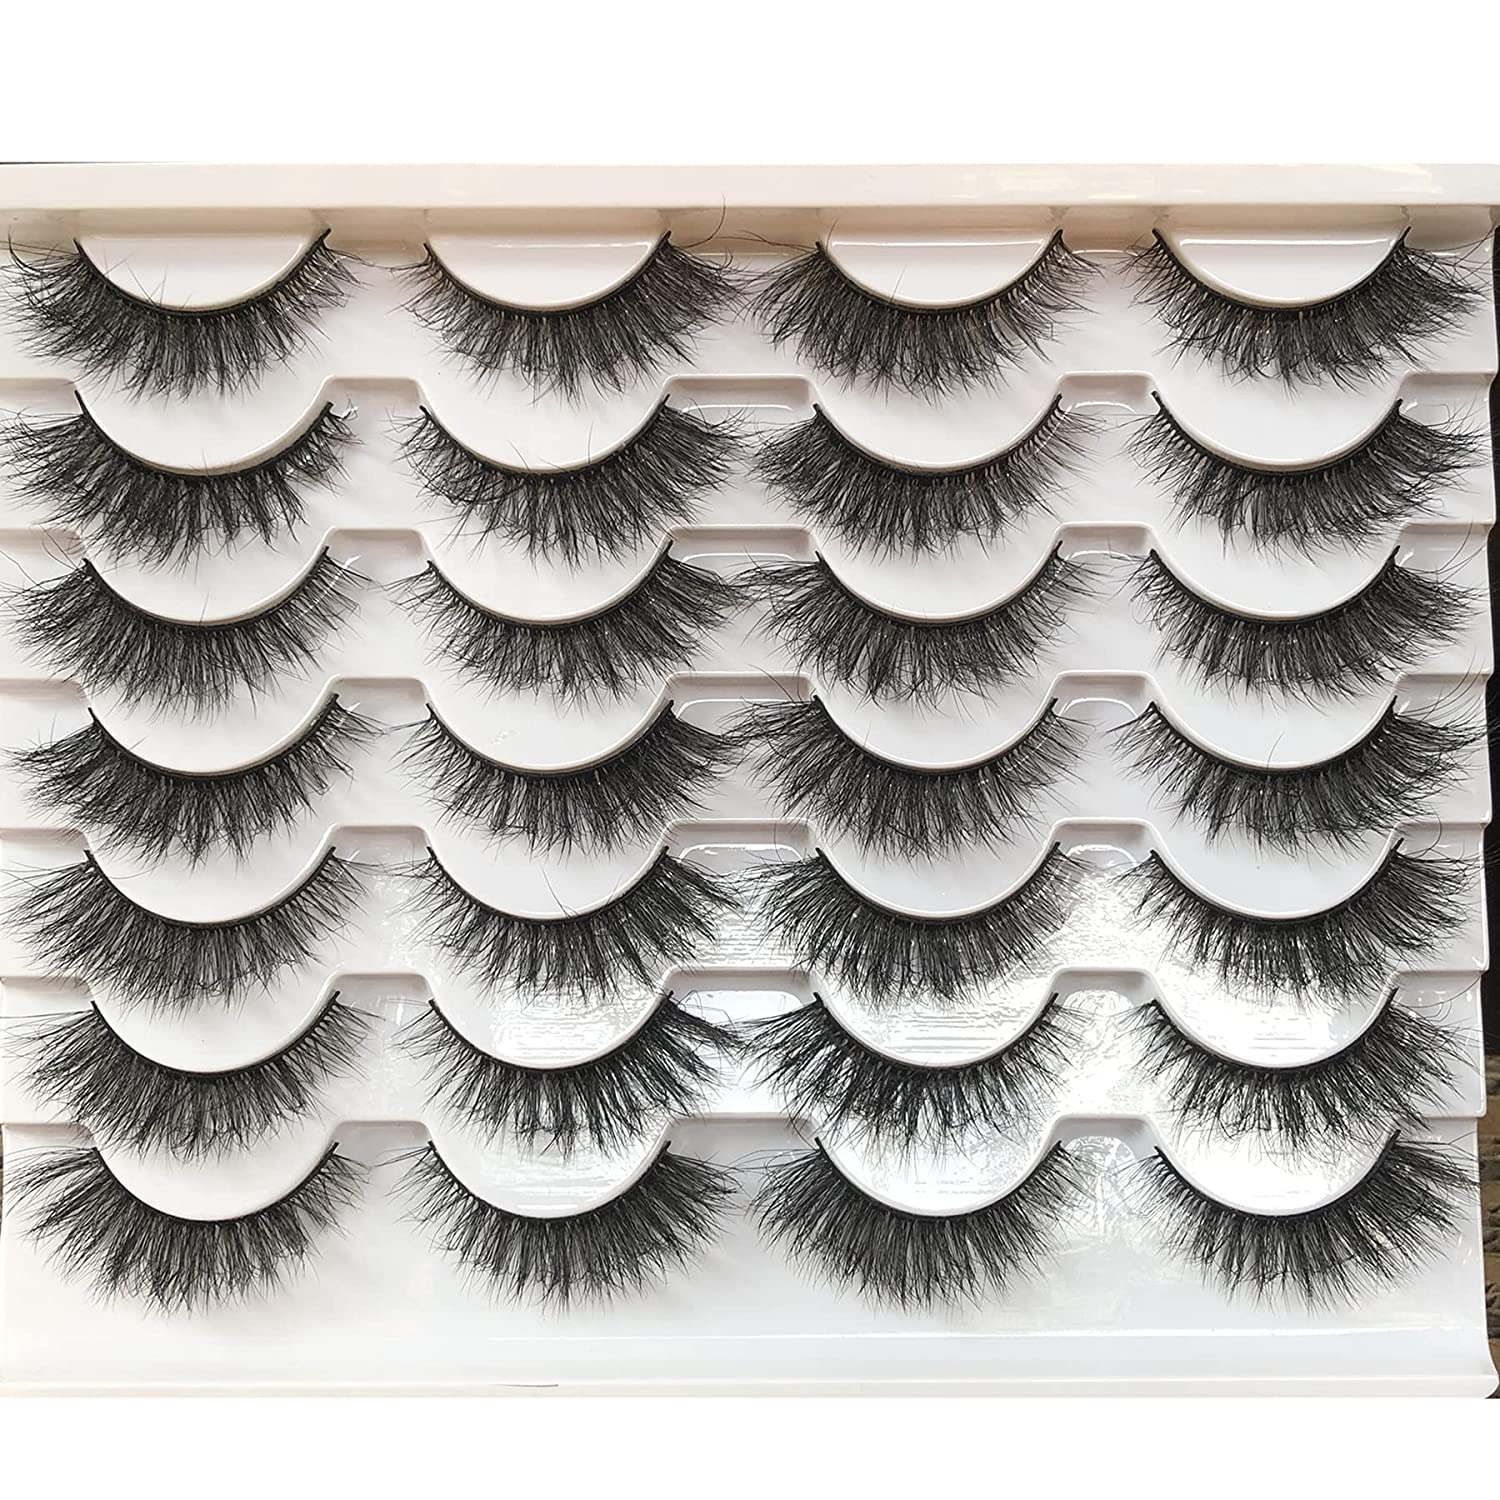 HOHADBR Fake Eyelashes Natural Clearance SALE Limited time Look 12mm 3D Short Ranking TOP16 Small False Ey